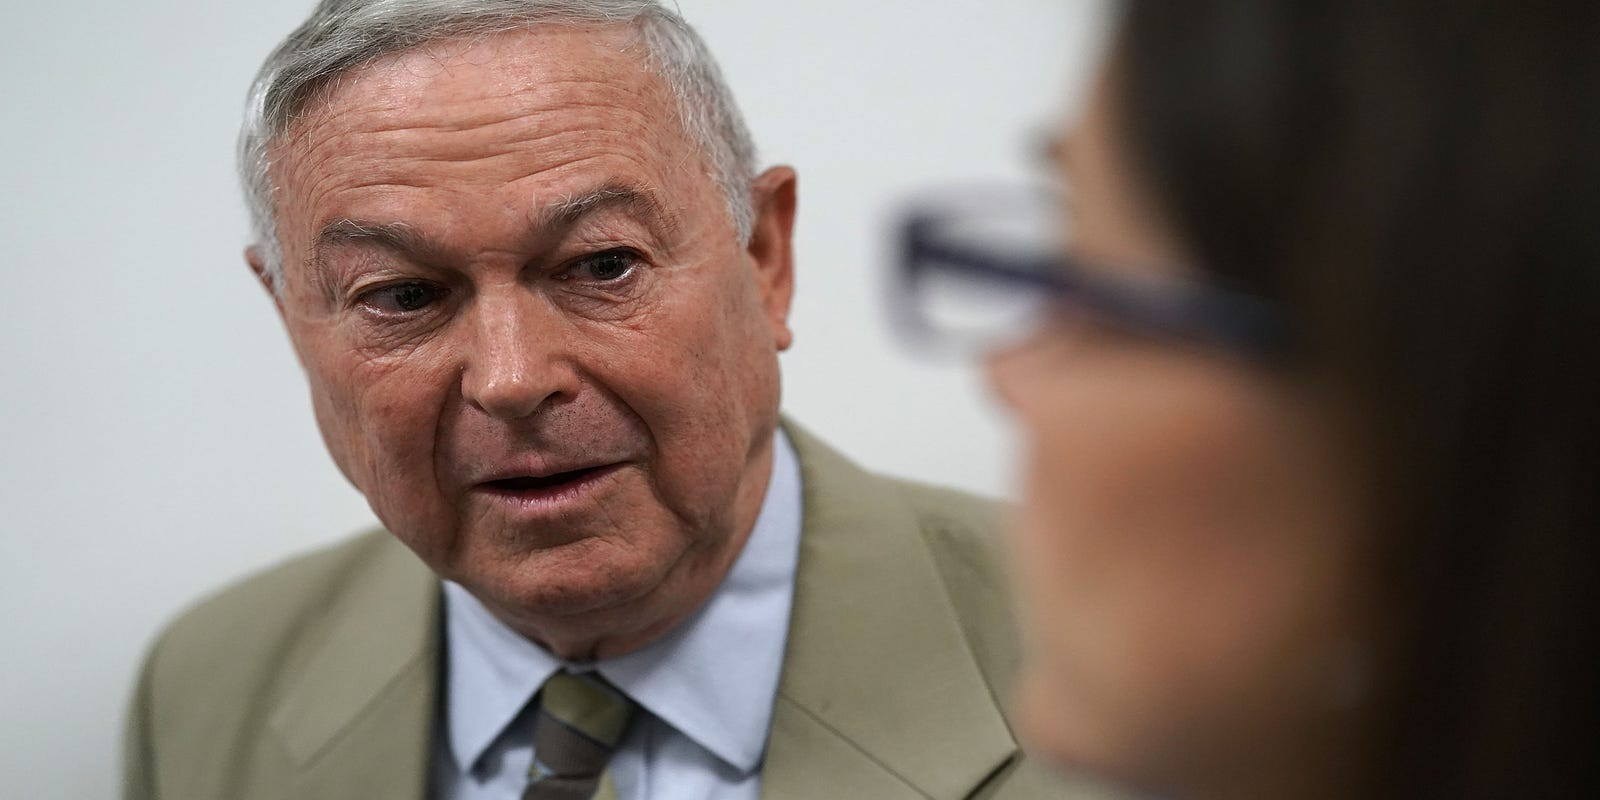 Former GOP Rep. Dana Rohrabacher says he attended Jan. 6 protests before US Capitol riot